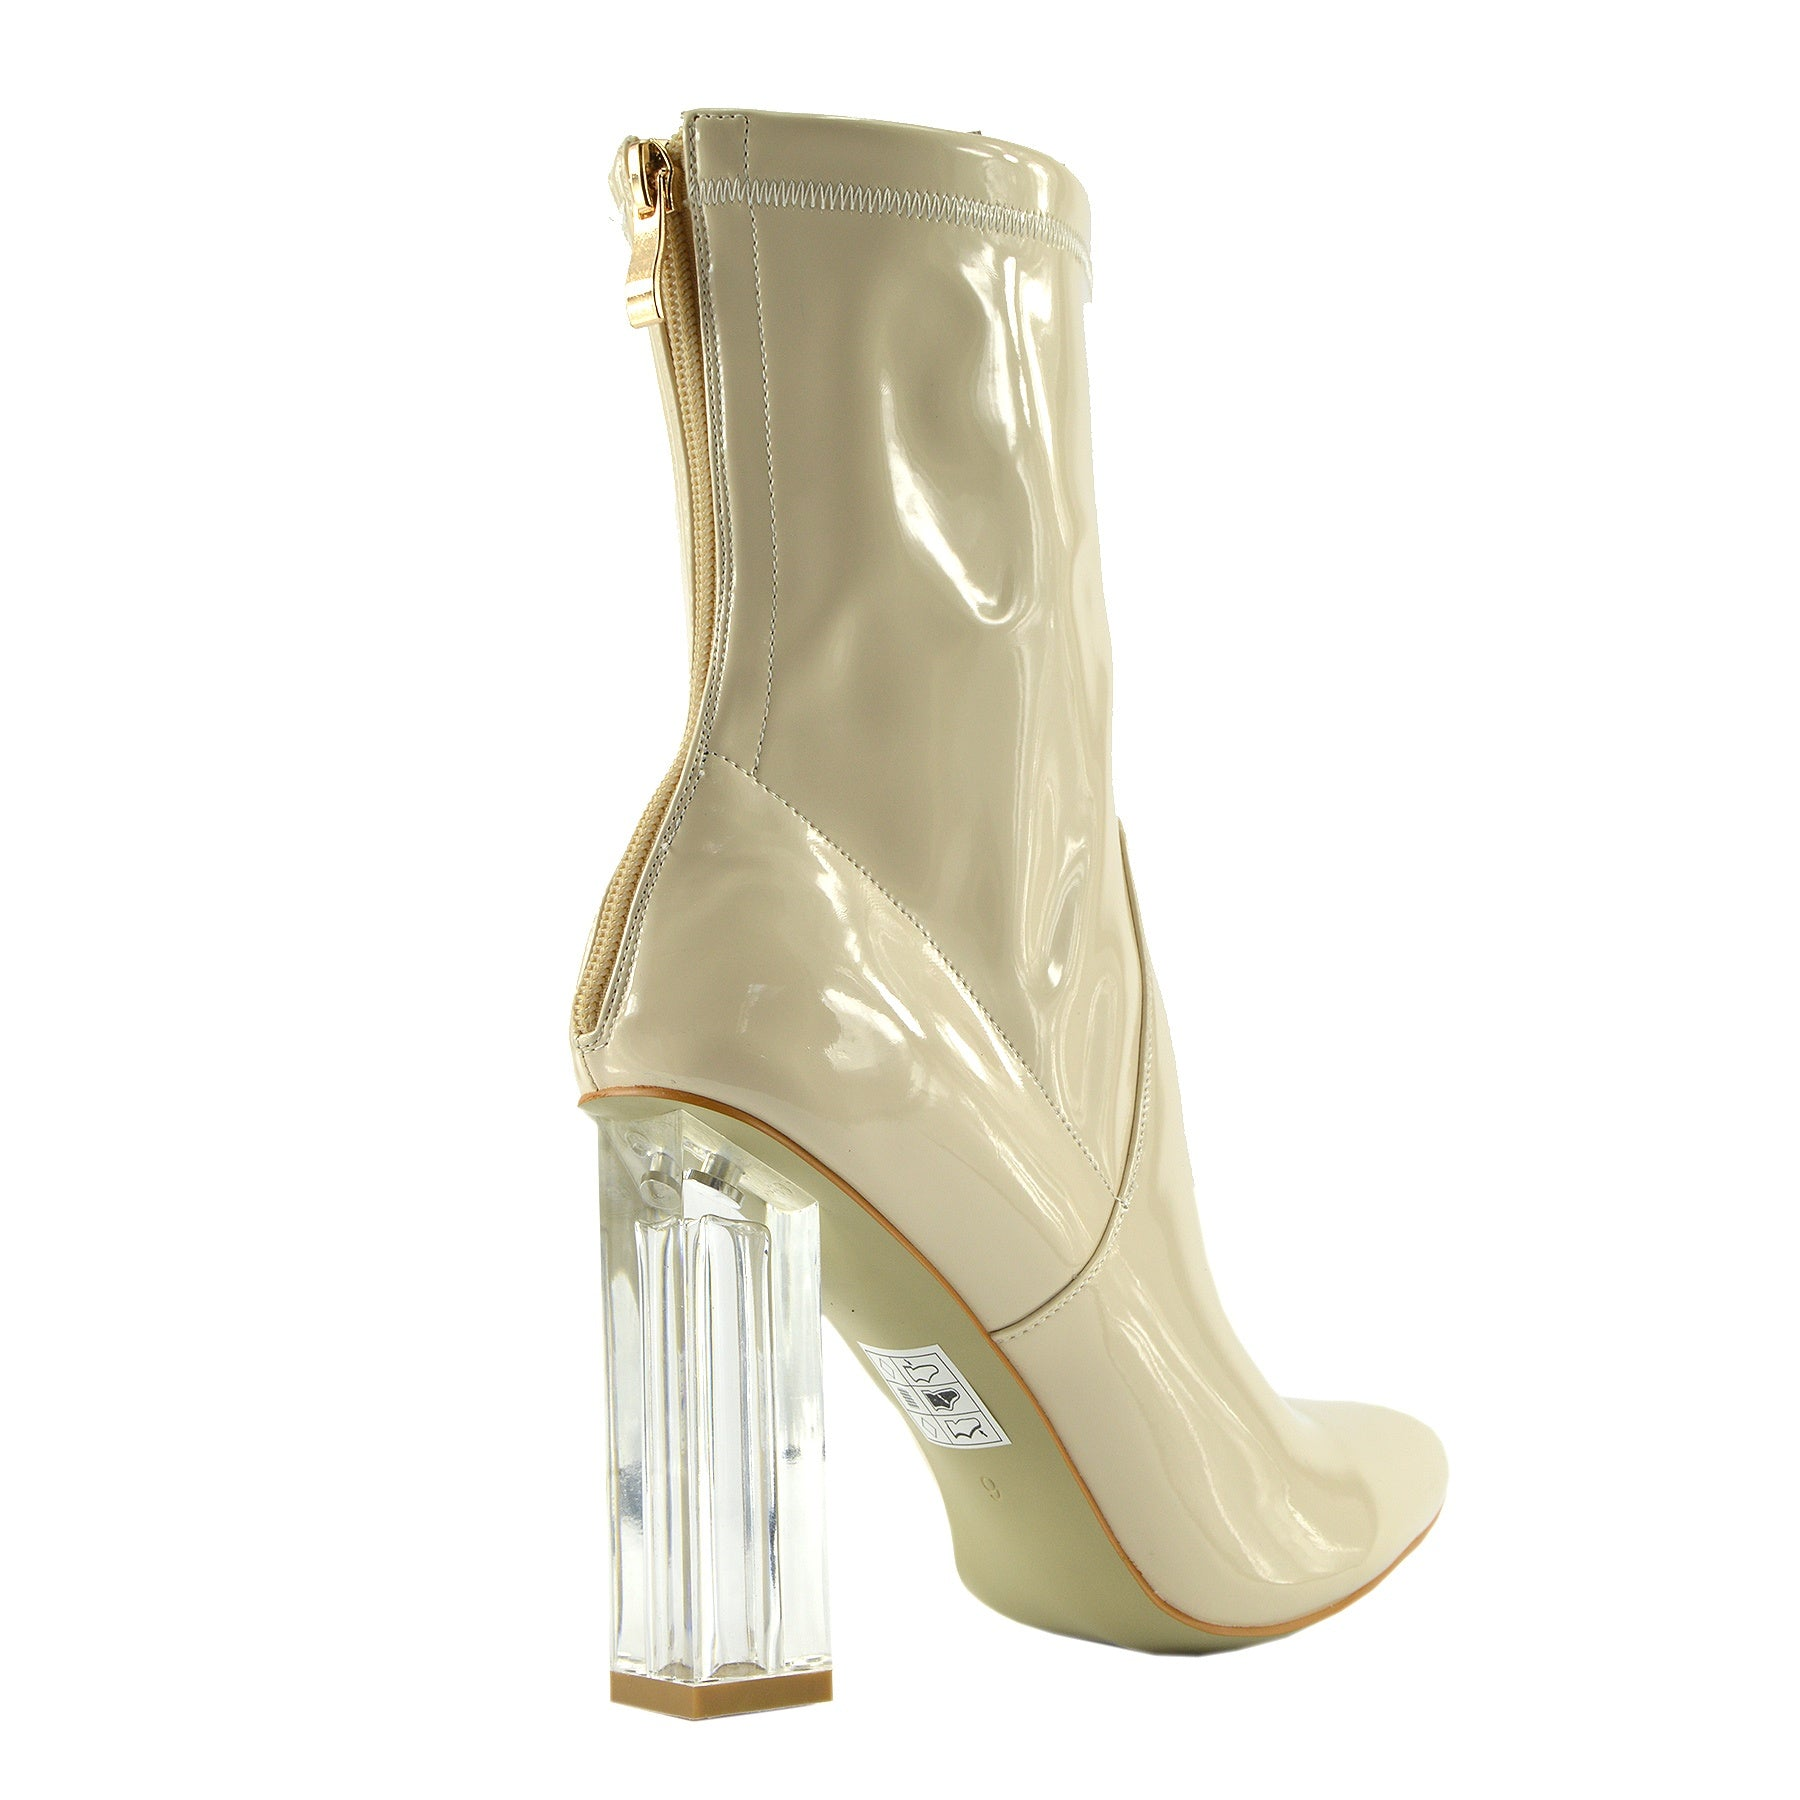 93a1b066a7bb90 Maddox Celeb Ankle Boot Clear Perspex Block Heel Fashion Shoes - Nude